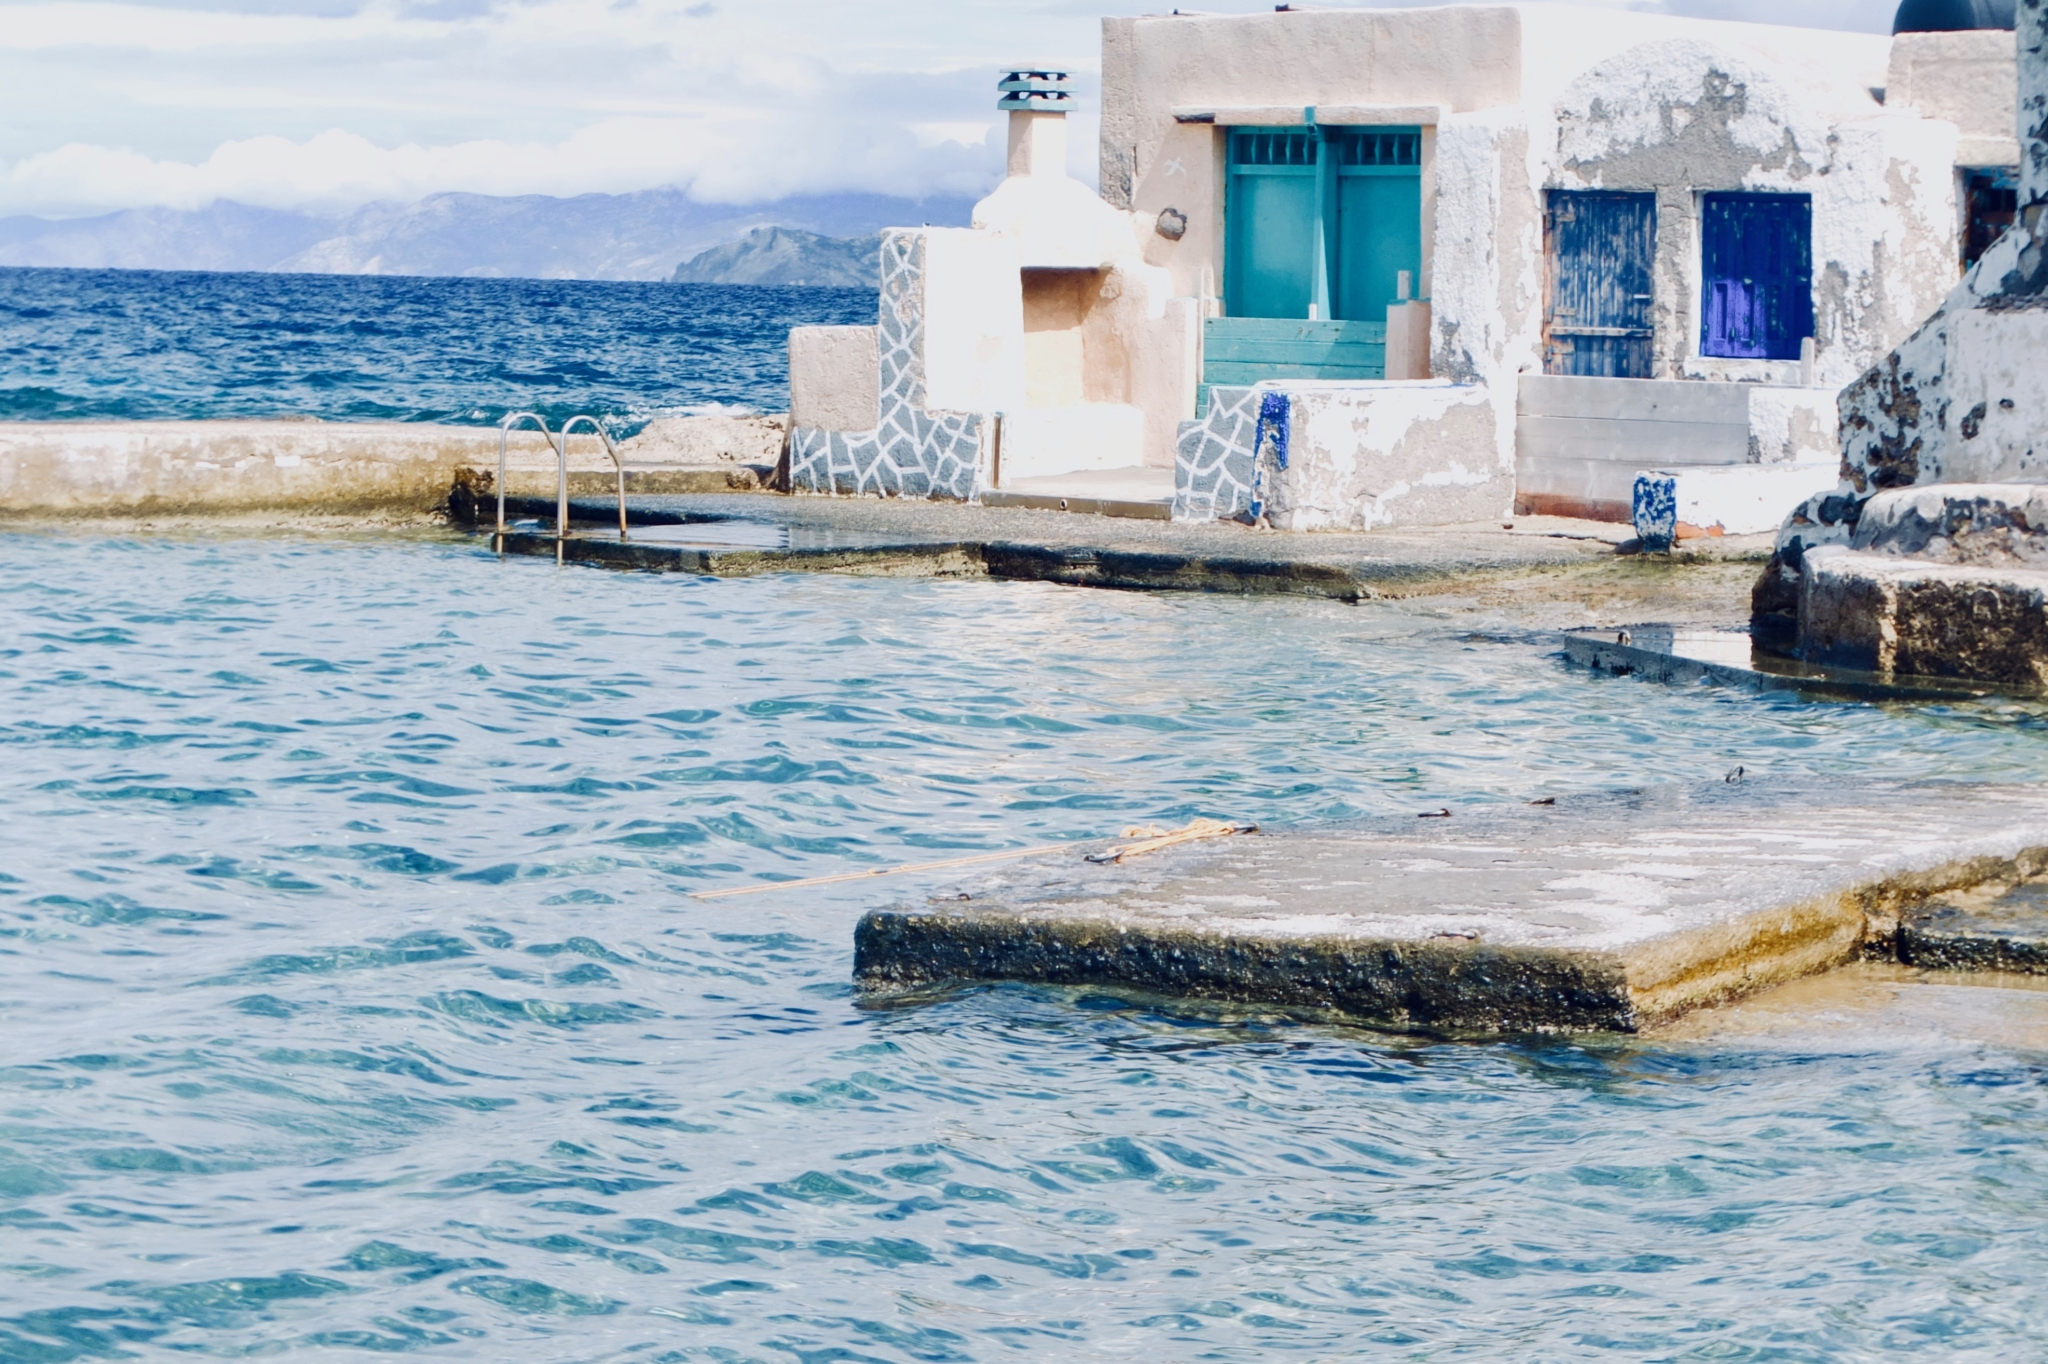 beach shack, mediterranean, greek islands, mediterranean islands, blue sea, aegean sea, dream life, stone house, seaside shack, fisherman shack